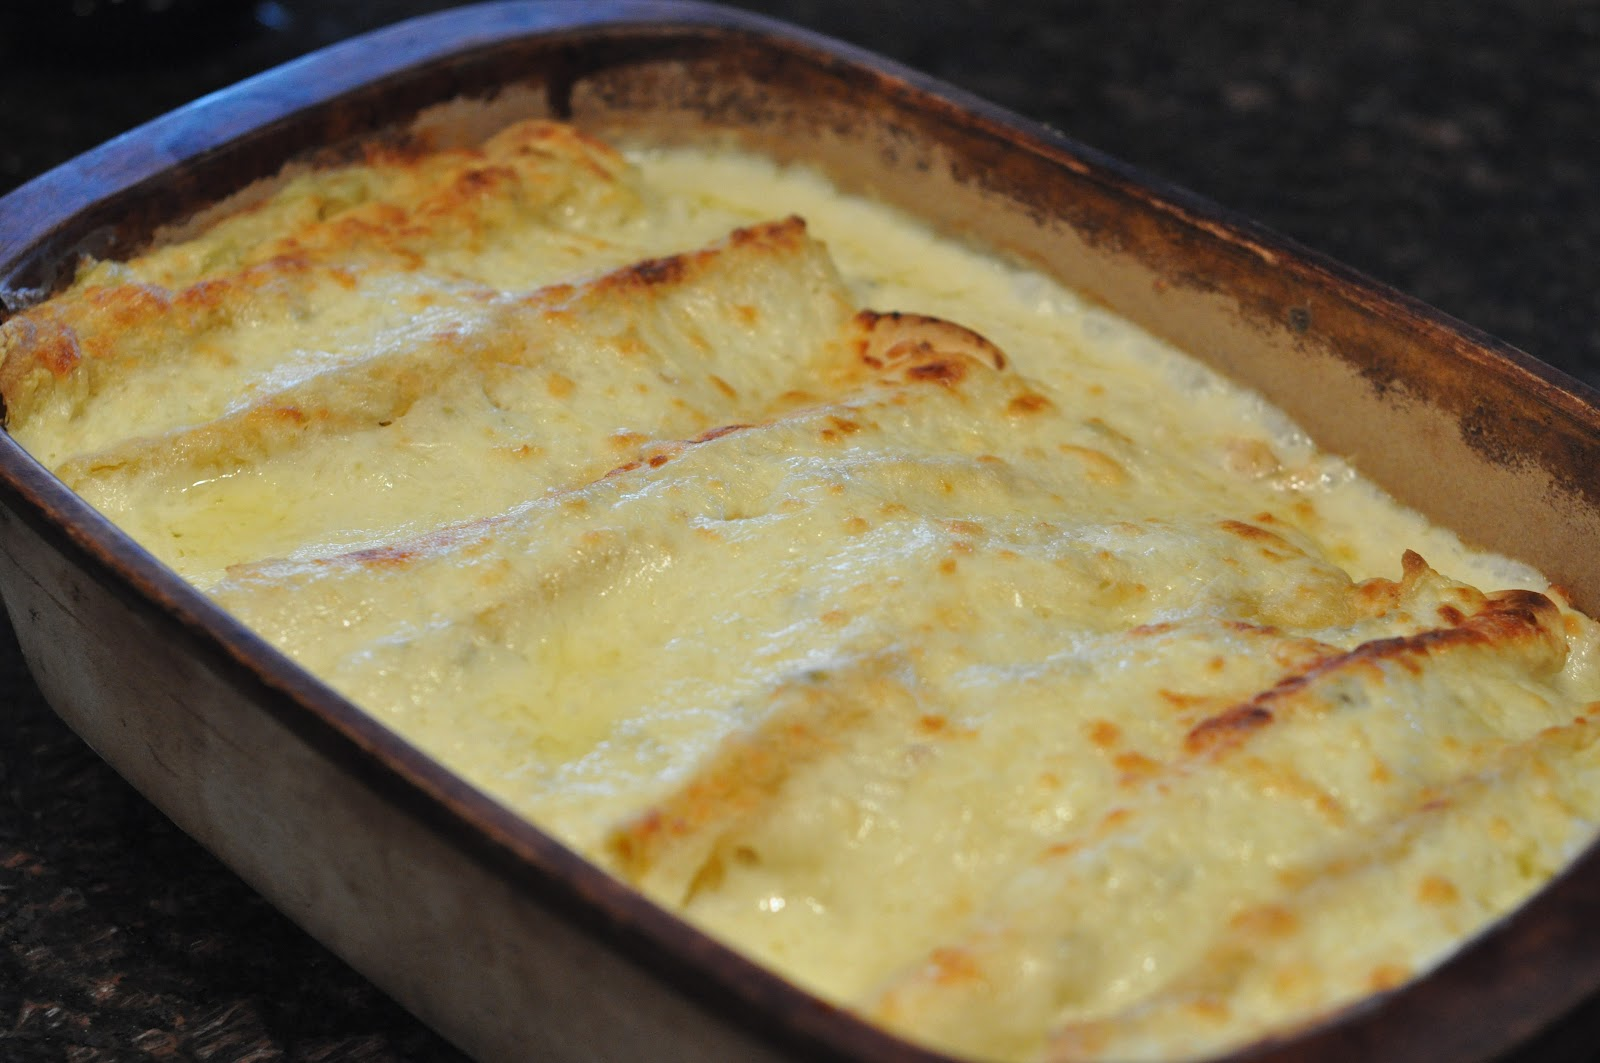 Jahjong: White Chicken Enchiladas